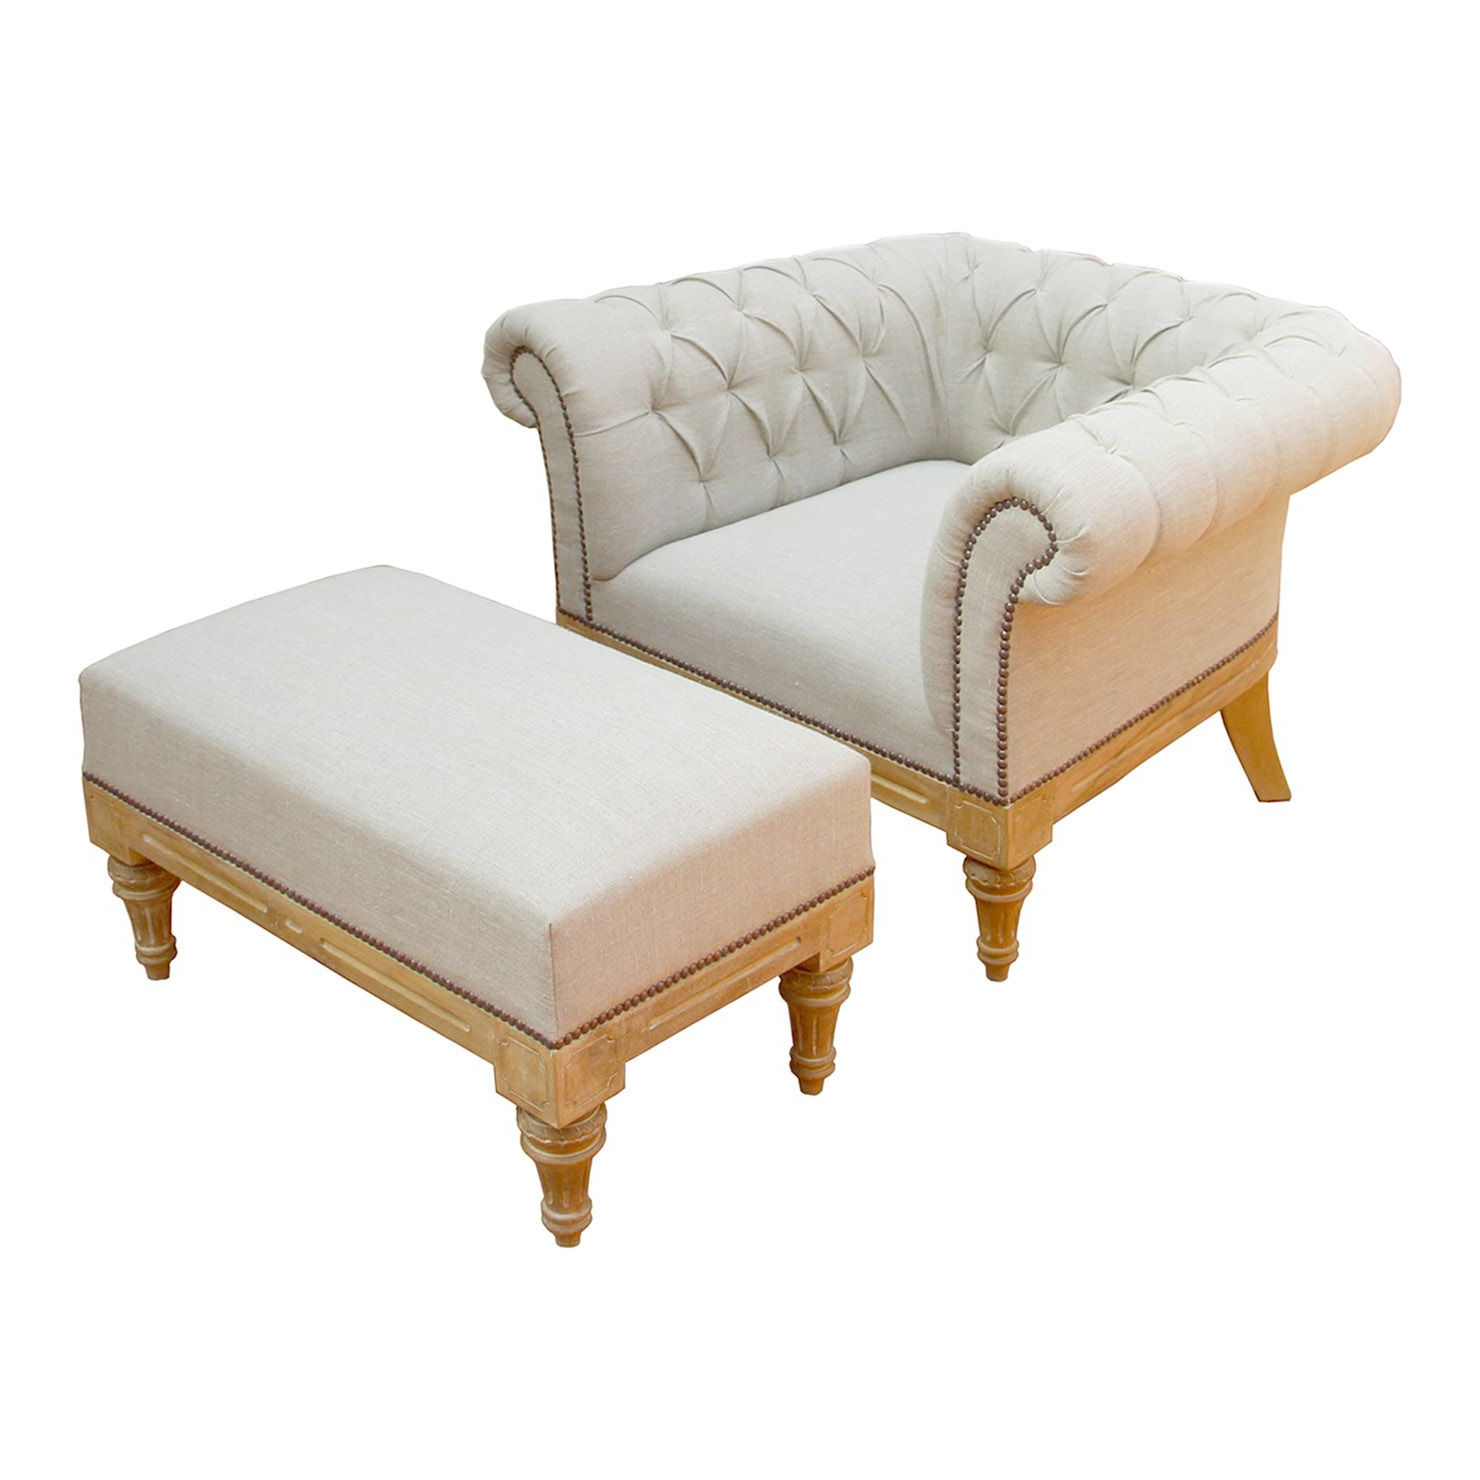 White Armchair With Ottoman Intended For Most Recent Michalak Cheswood Armchairs And Ottoman (View 14 of 20)